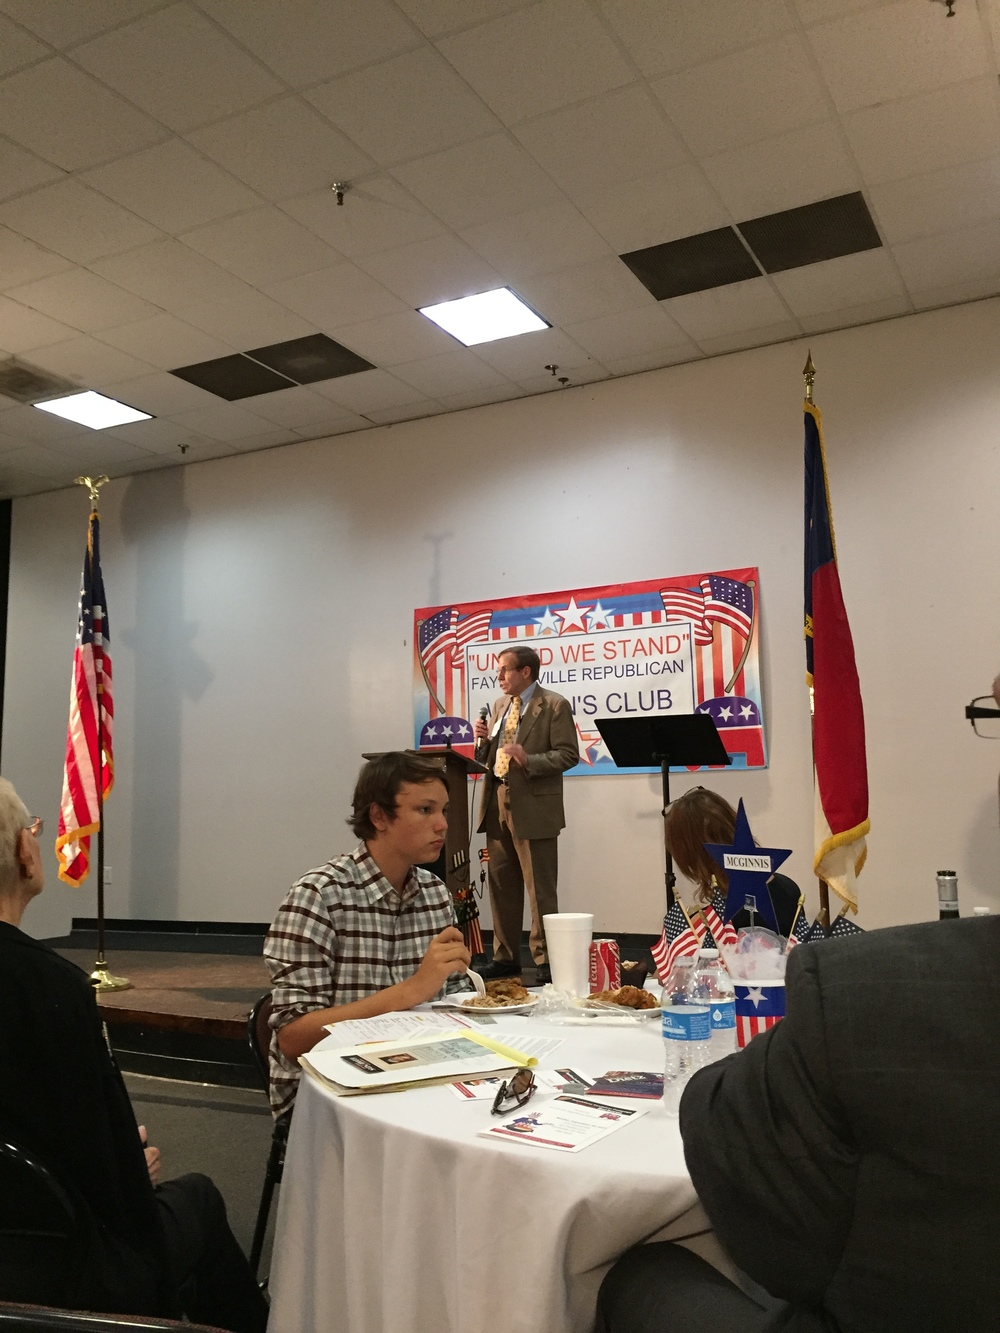 Justice Edmunds at Fayetteville Republican Club, 20 September 2015.